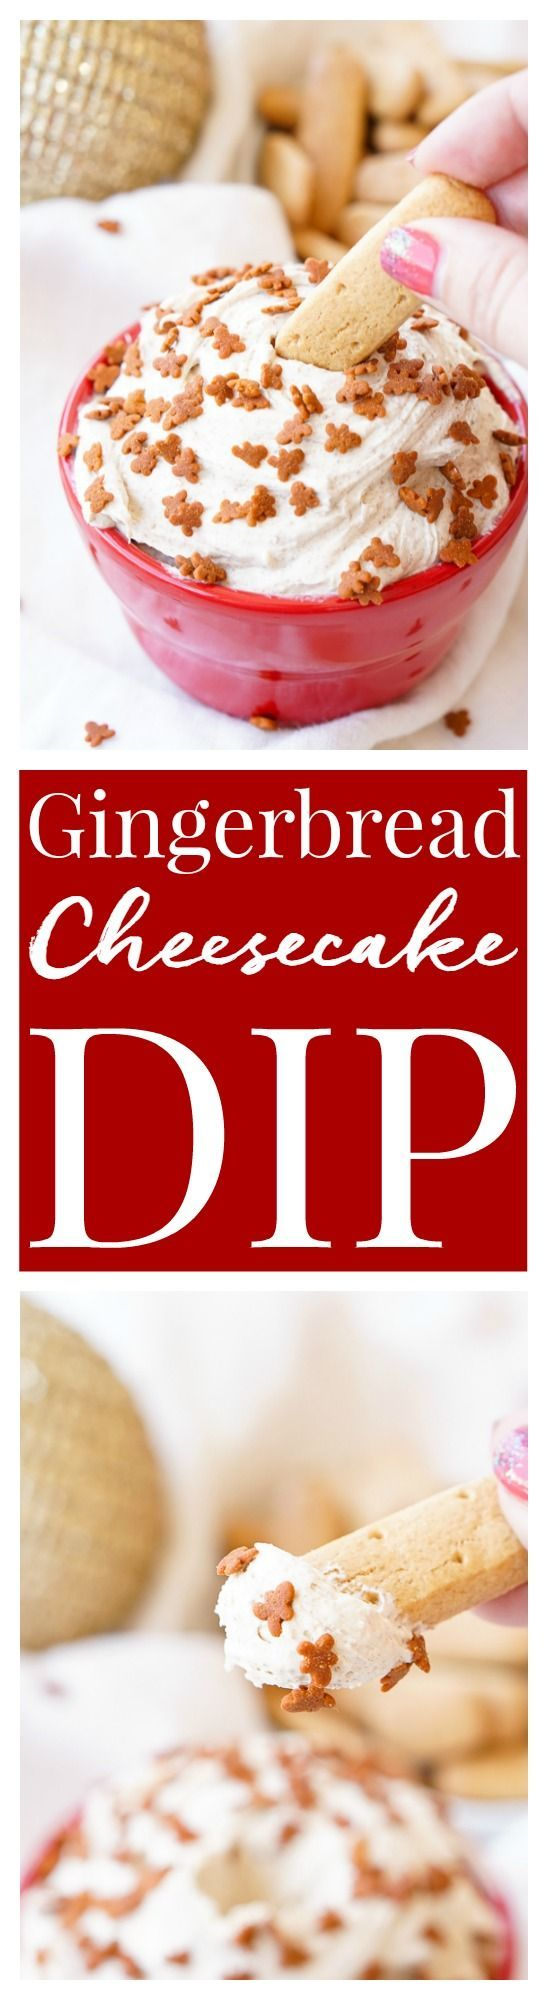 Gingerbread Cheesecake Dip is an easy and no-bake 4-ingredient dessert that's perfect when you need a festive treat in a pinch. via @sugarandsoulco